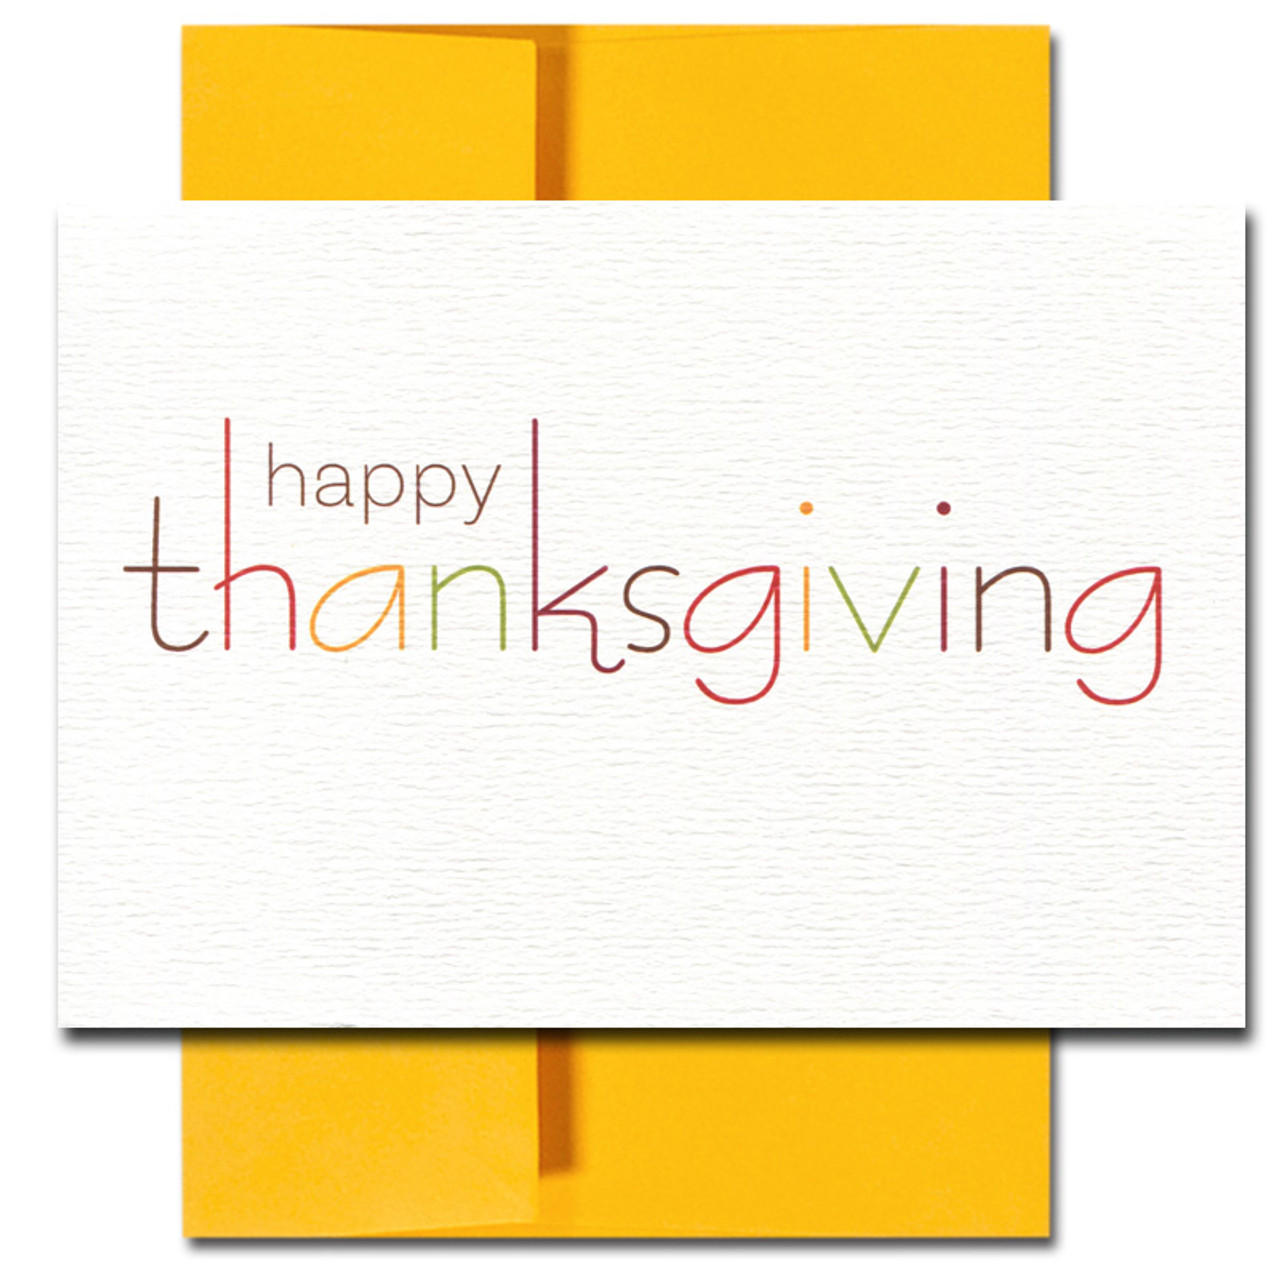 Plenty of Reasons Thanksgiving card has the words Happy Thanksgiving printed in traditional fall colors on textured card stock